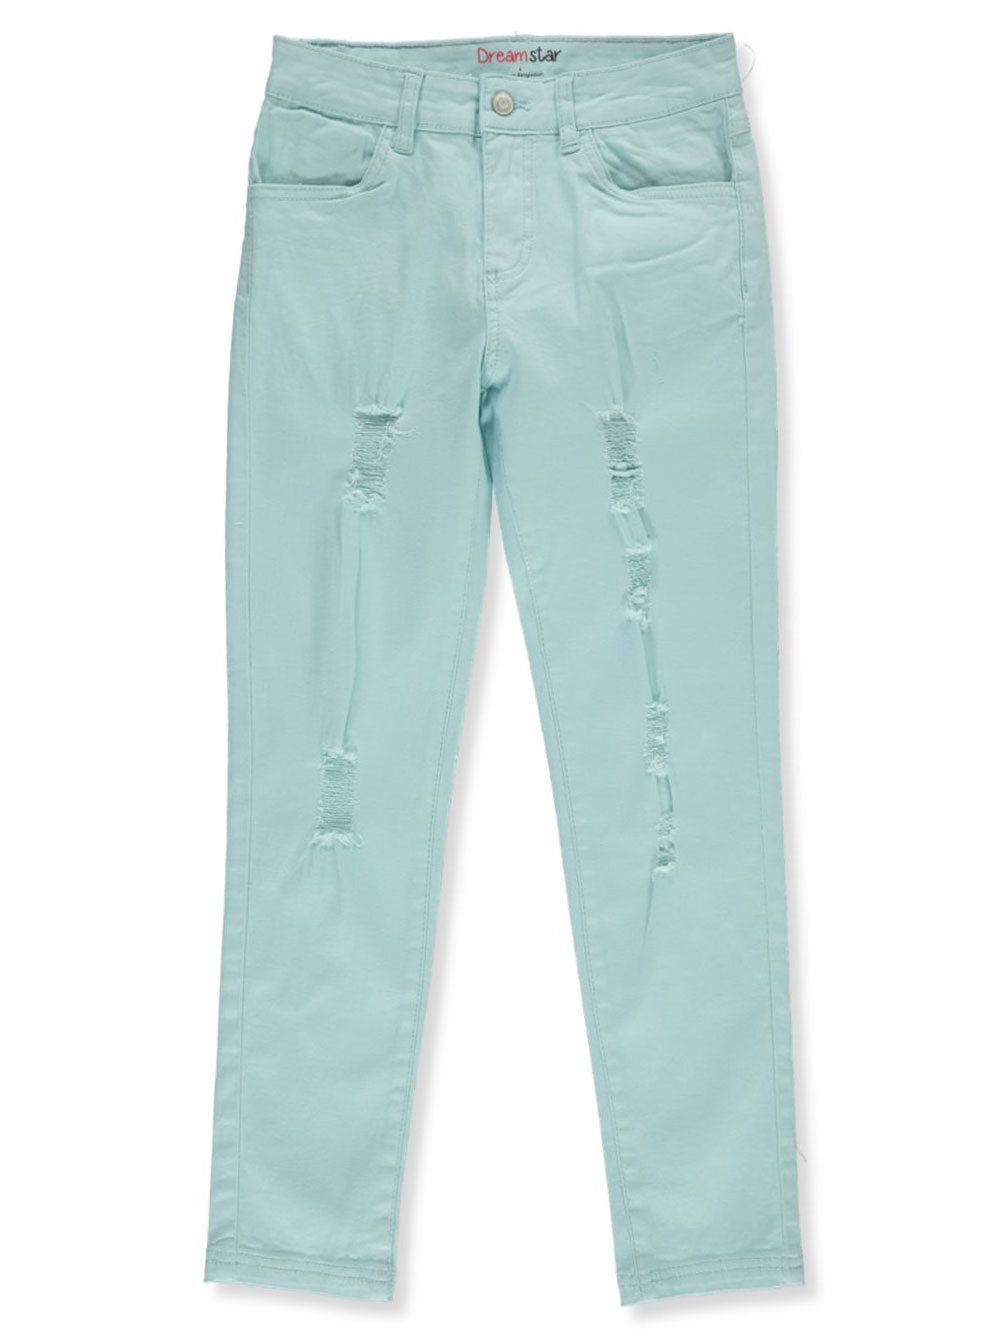 Dreamstar Pants